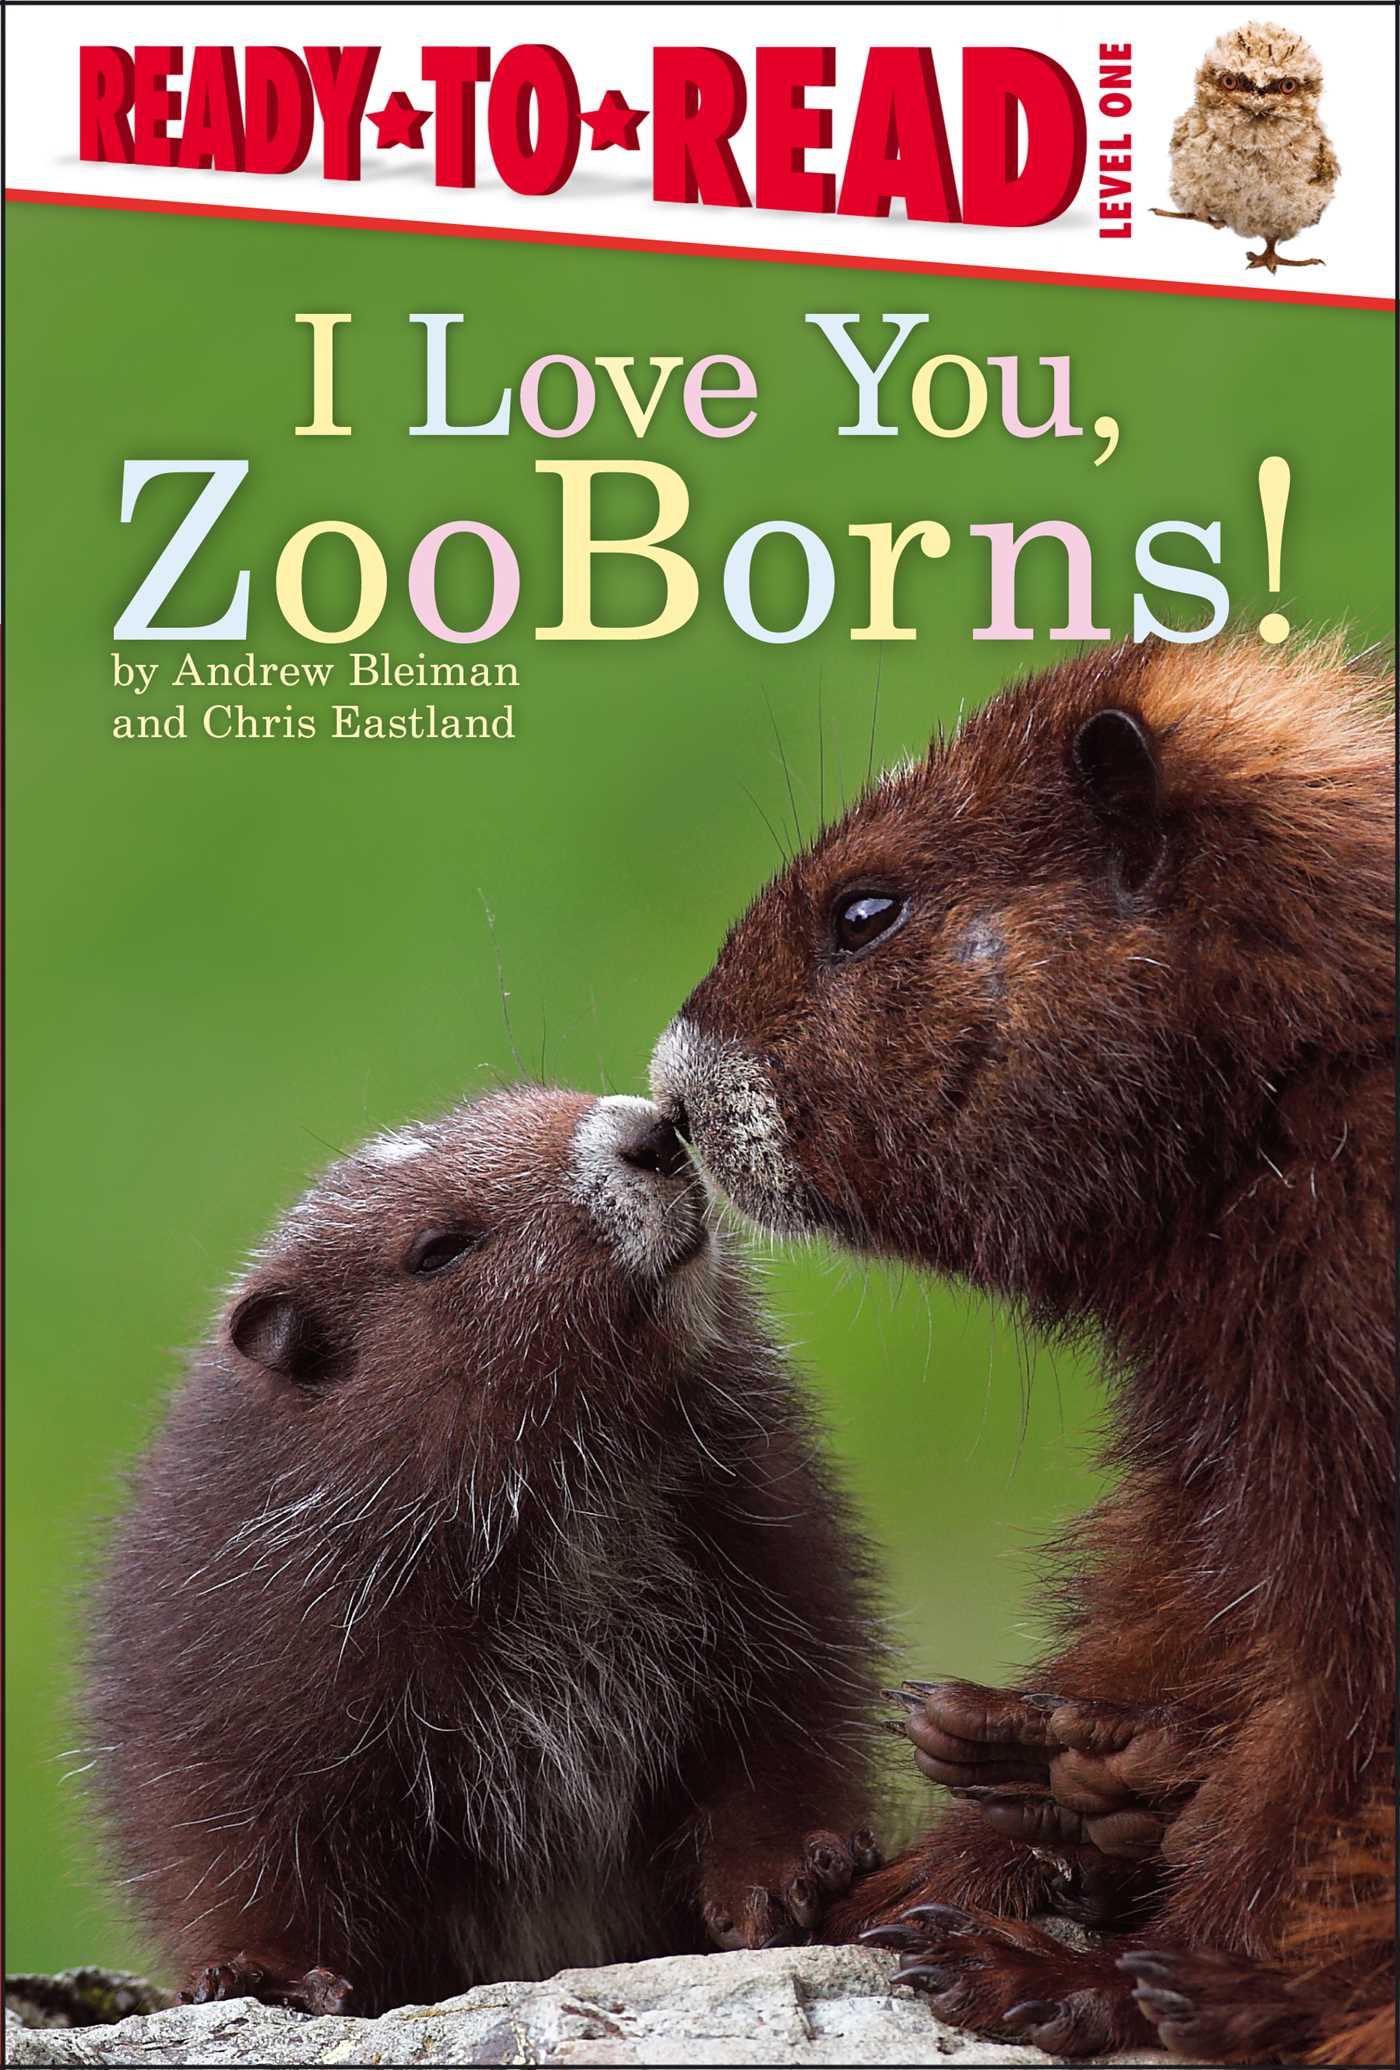 I love you zooborns! 9781442443792 hr